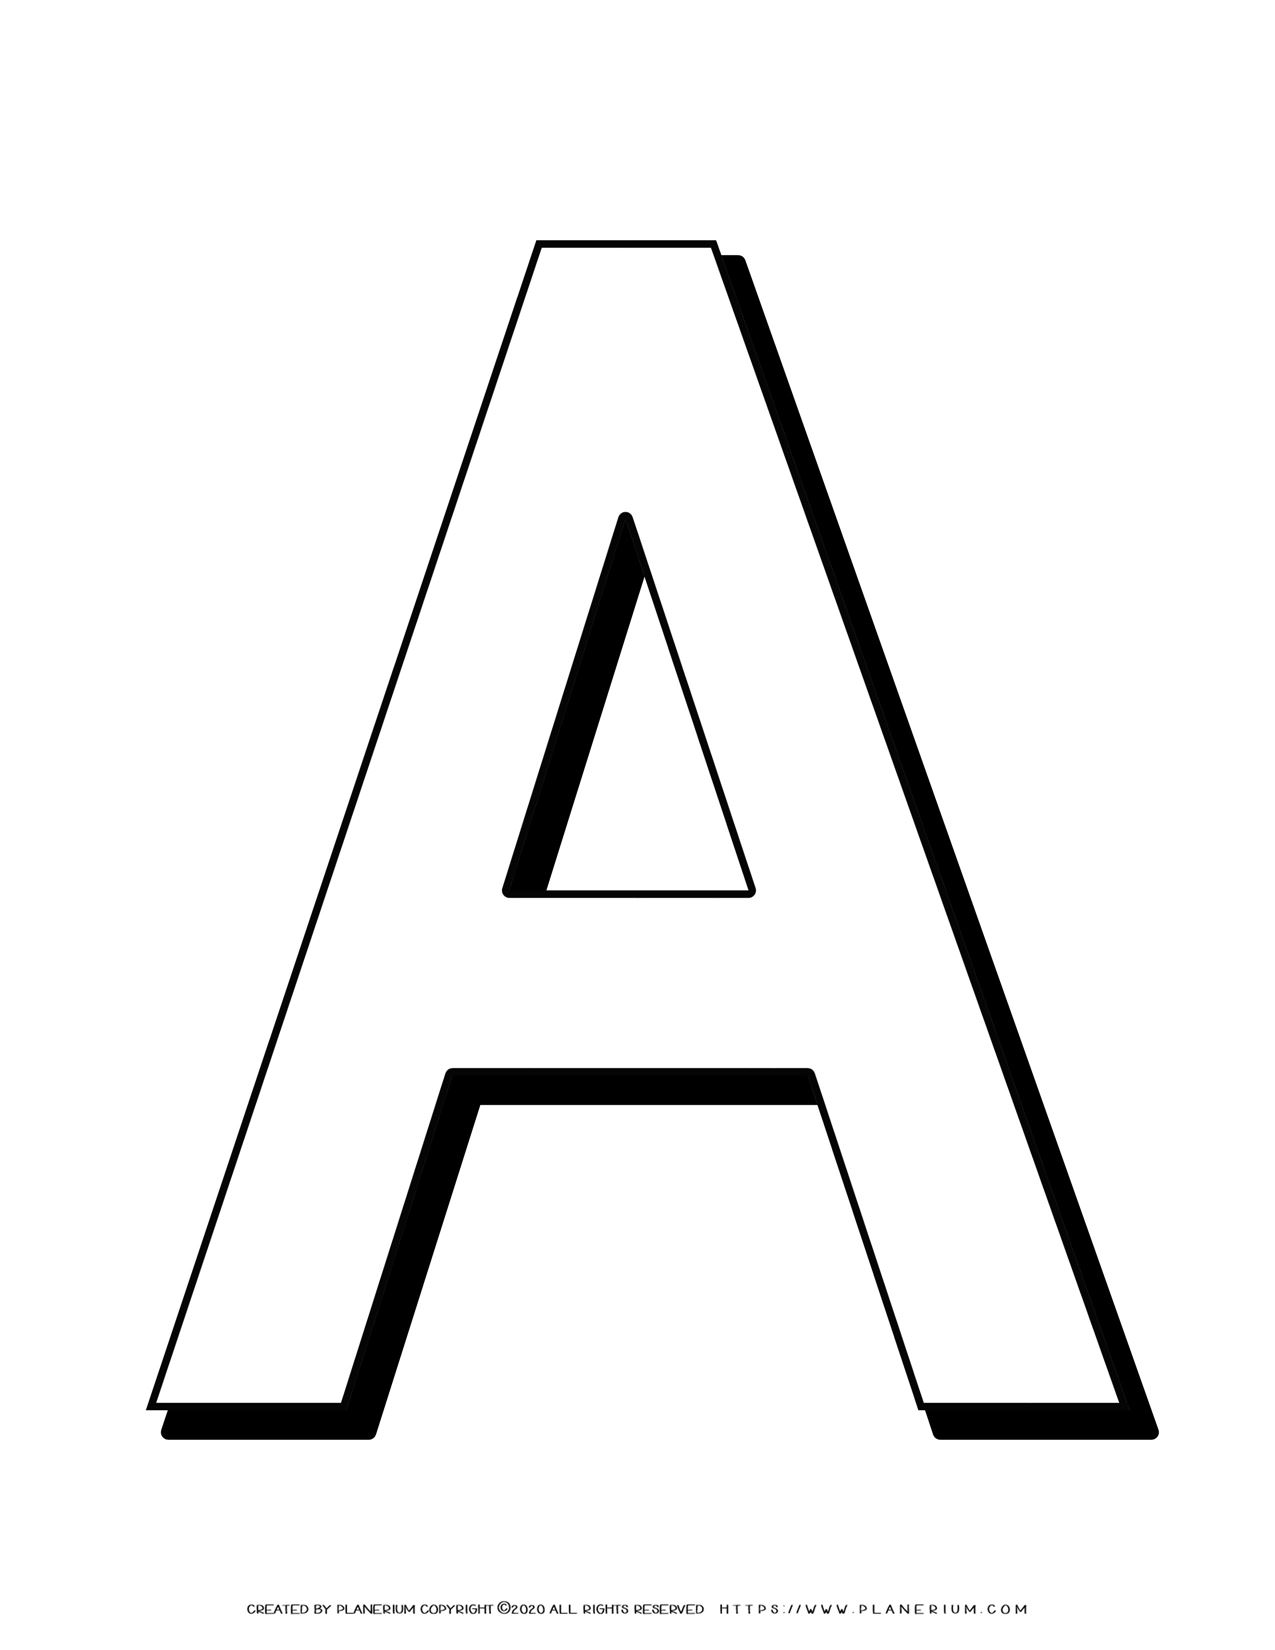 Alphabet Coloring Pages - English Letters - Capital A | Planerium